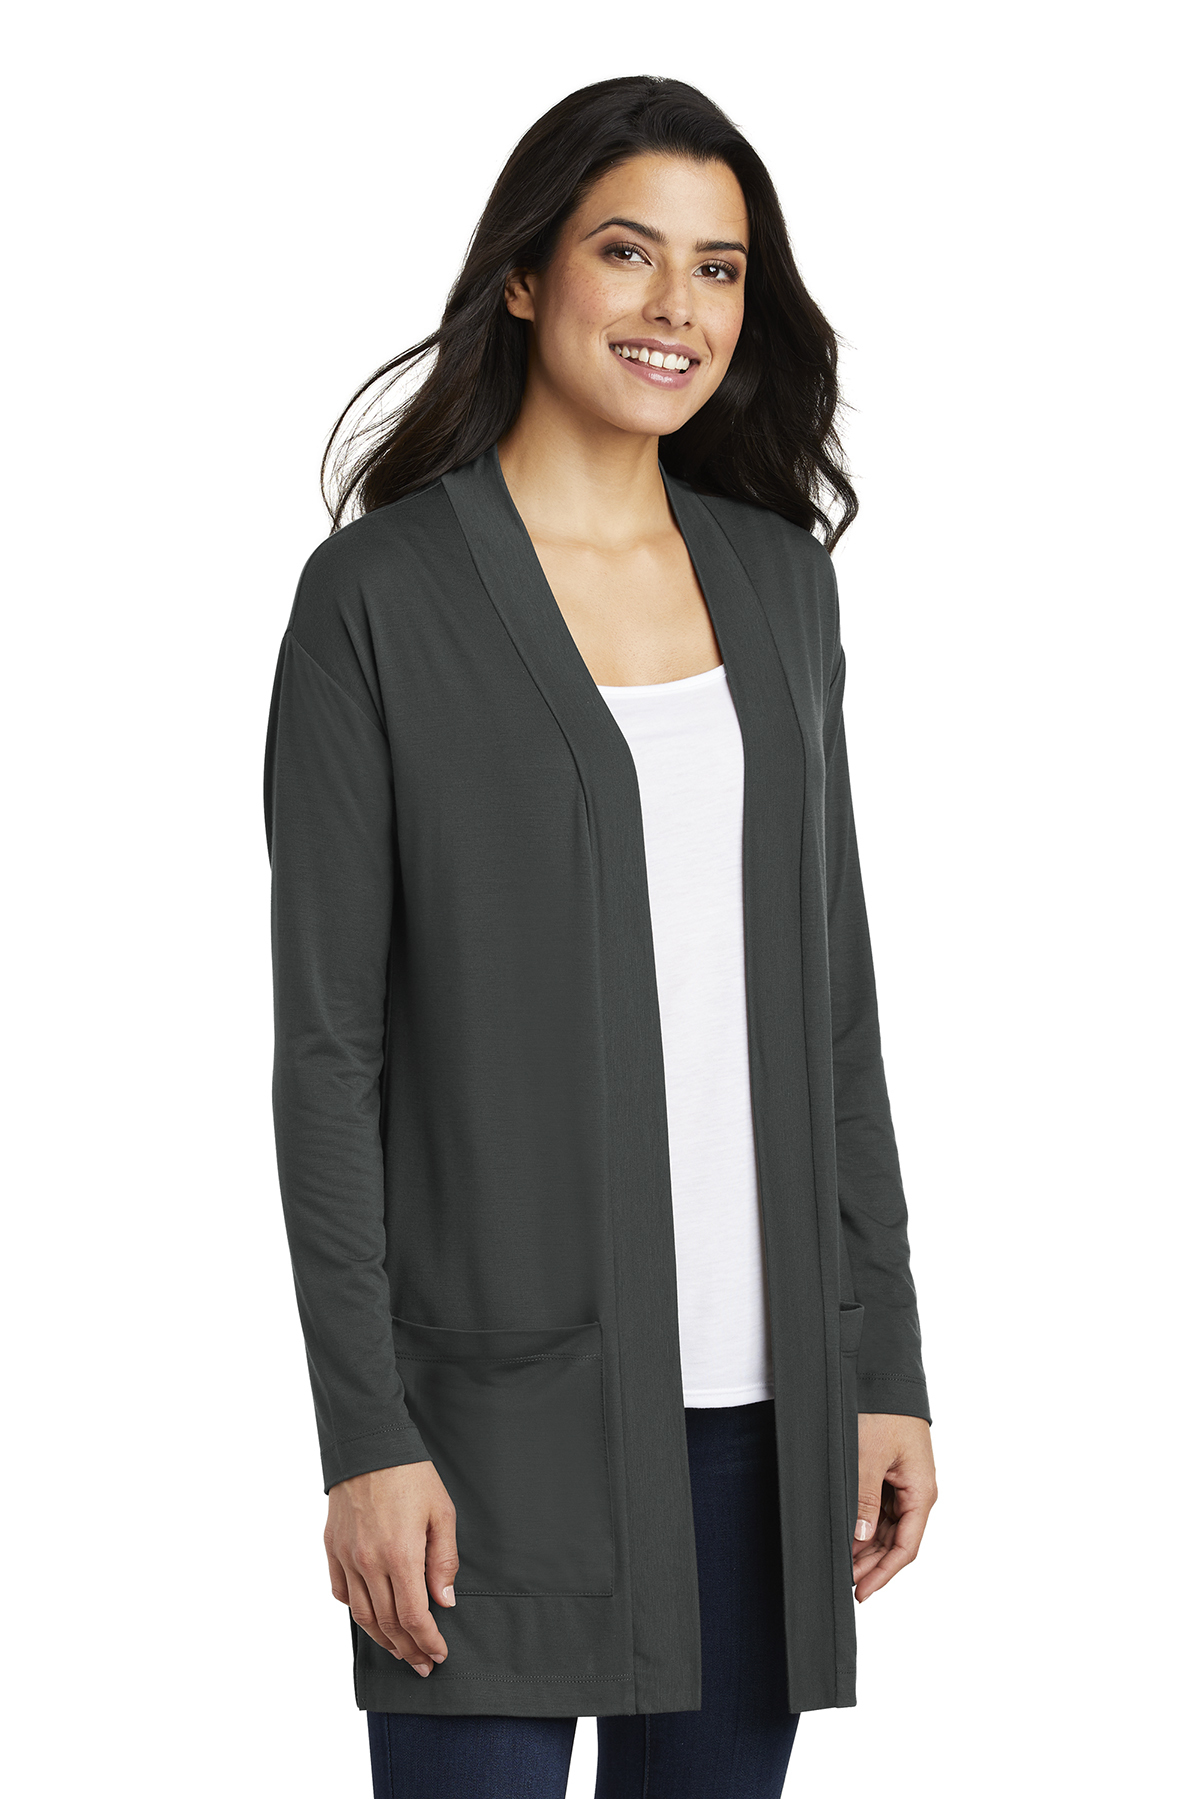 8c0d53774 ... Port Authority ® Ladies Concept Long Pocket Cardigan. A maximum of 8  logos have been uploaded. Please remove a logo from My Logos to continue